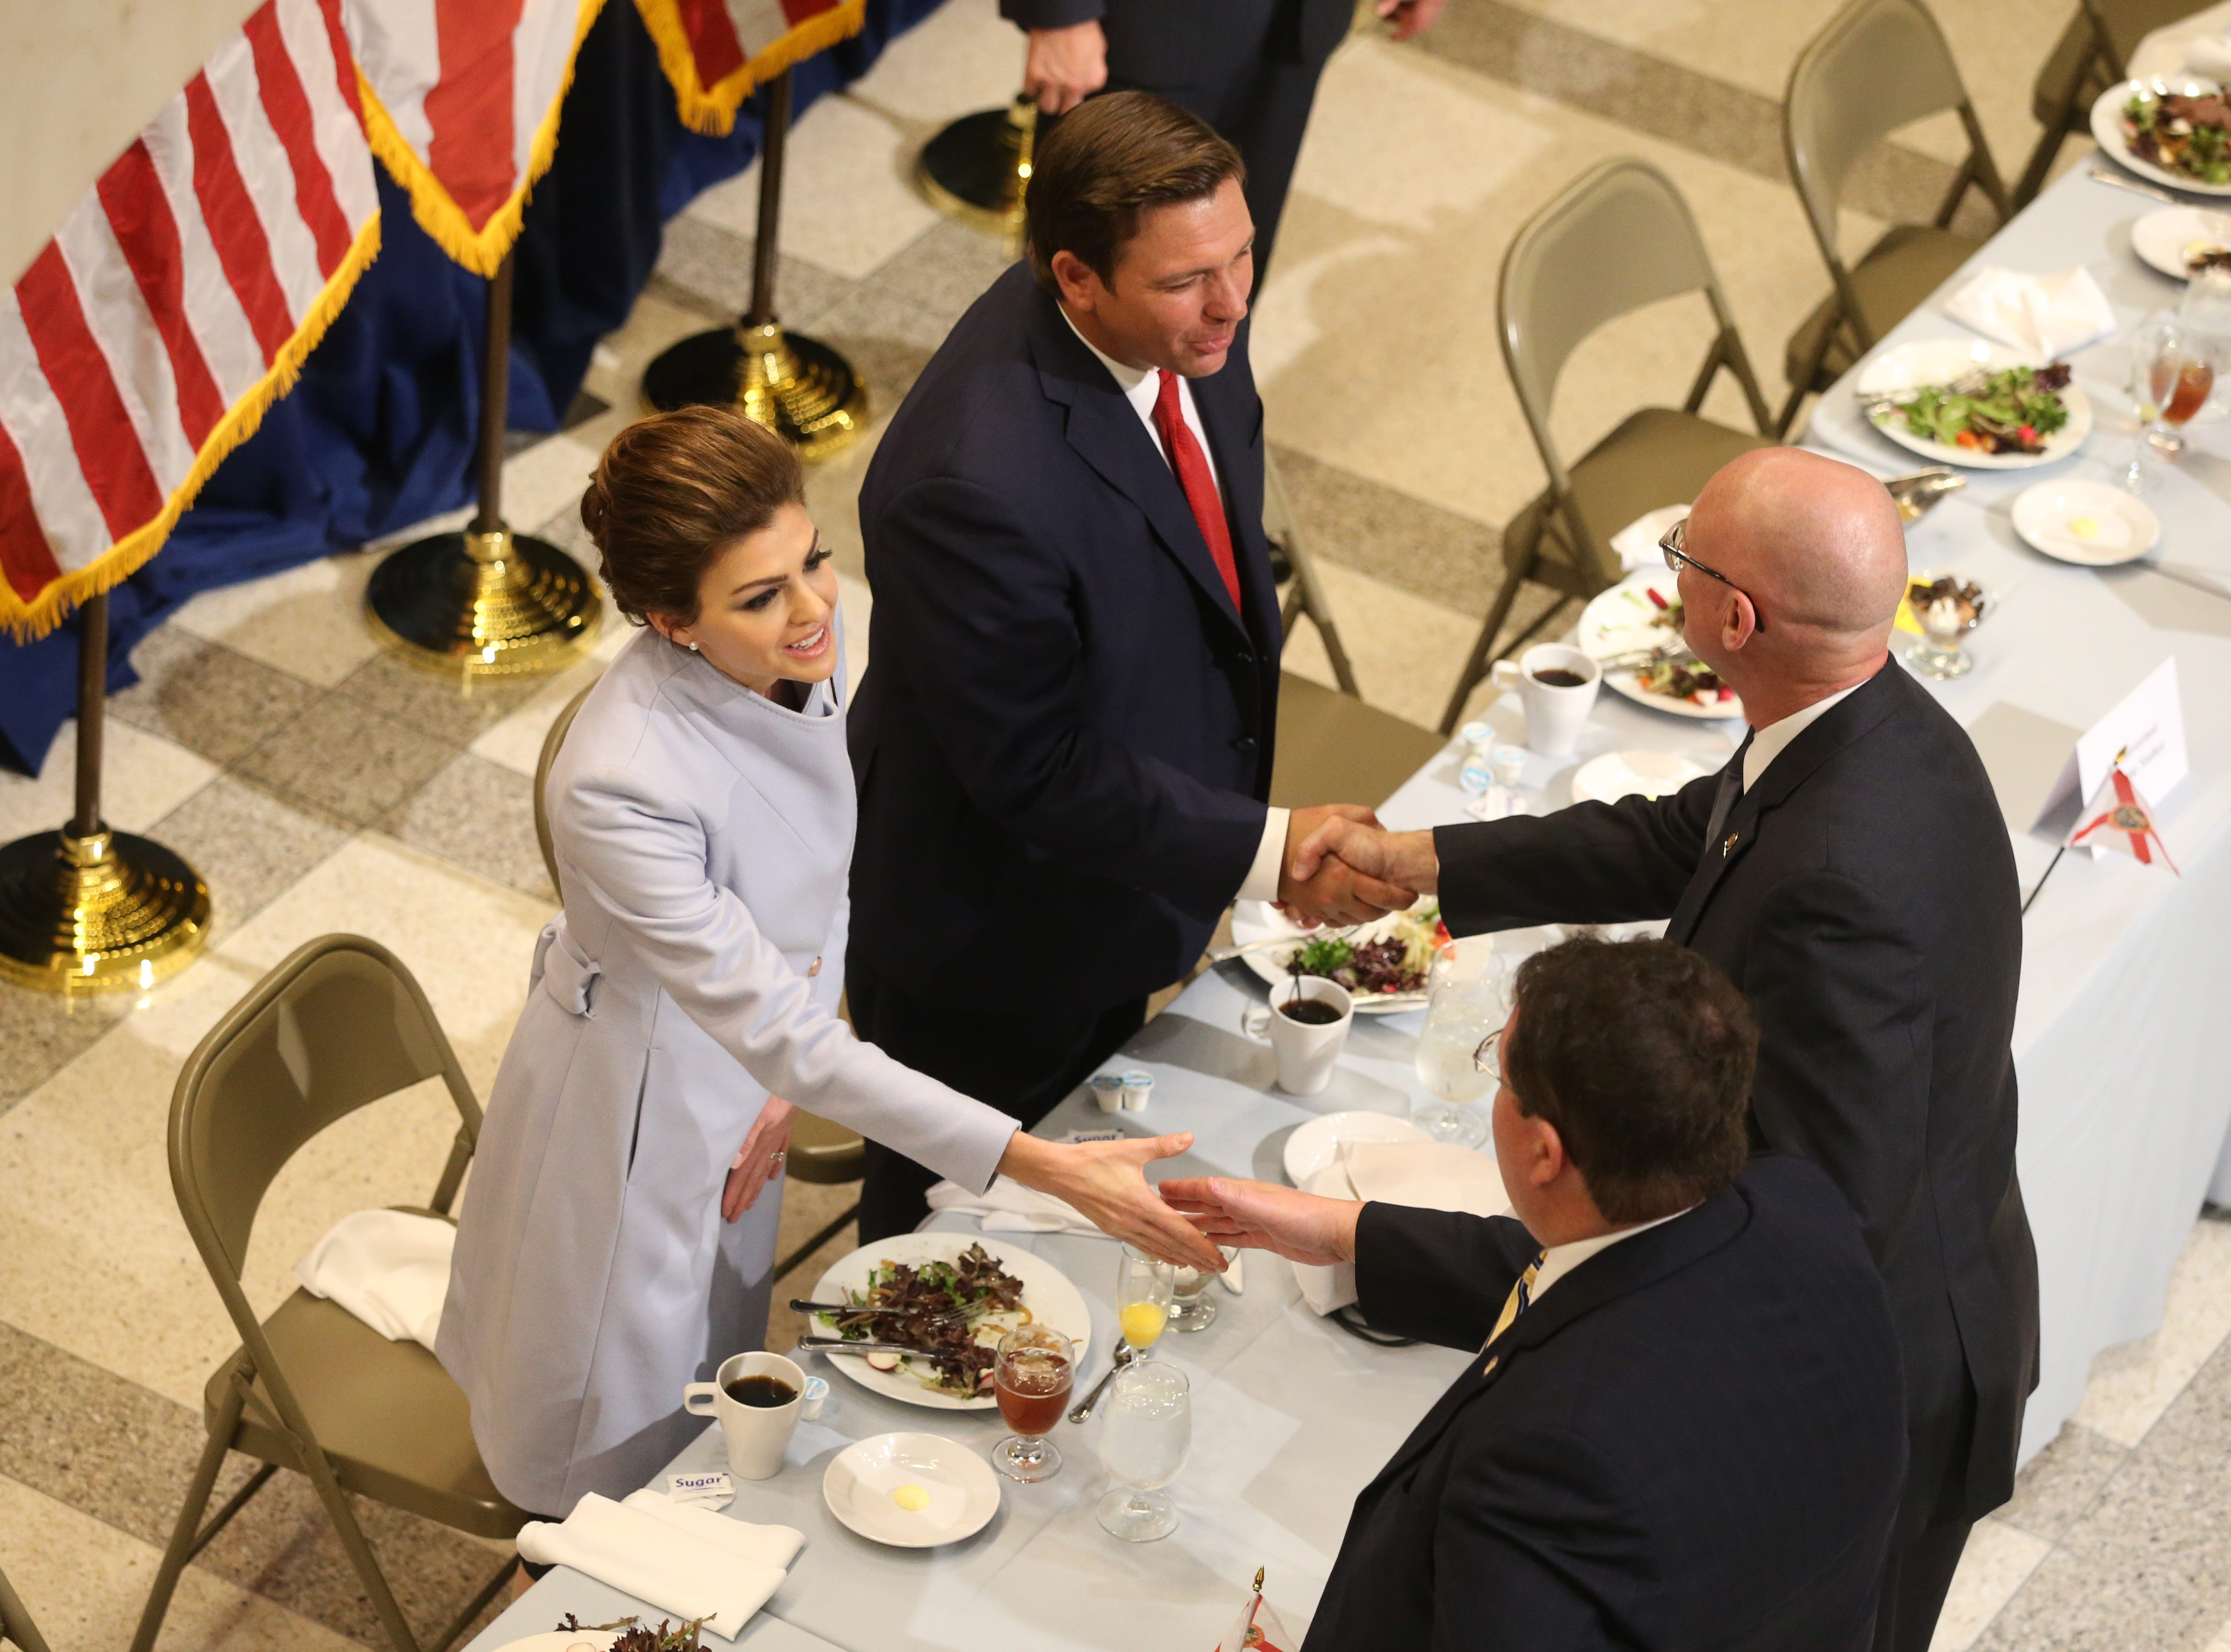 For the first time in Inaugural history, Gov. Ron DeSantis addresses FloridaÕs Legislative leaders and Cabinet officials. DeSantis discusses his plans to work with our stateÕs elected leaders to achieve a Bold Vision for a Brighter Future, Tuesday, Jan. 8, 2019. First lady Casey DeSantis, left, and husband, Gov. Ron DeSantis shake hands with guests.